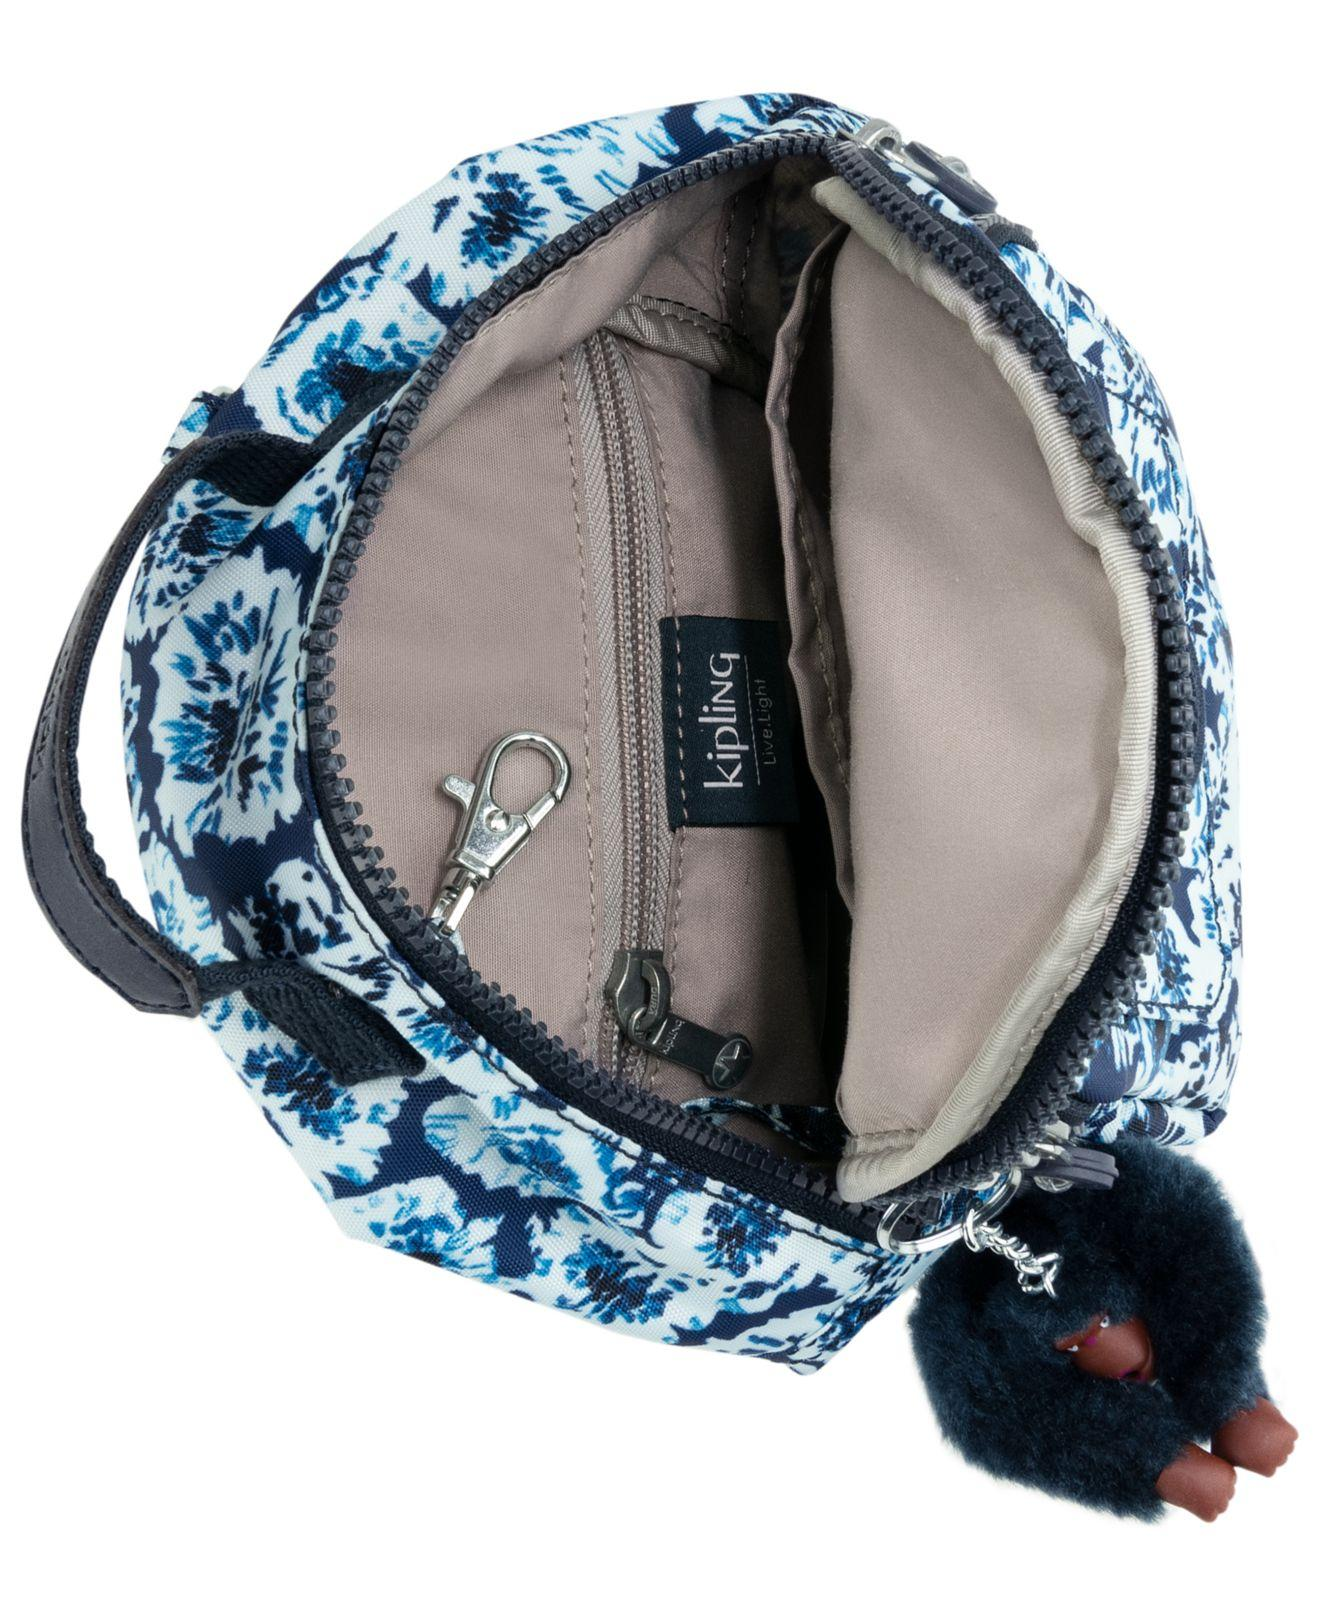 Lyst - Kipling Alber 3-in-1 Convertible Mini Bag Printed Backpack in Blue -  Save 41% a36324fcee30c